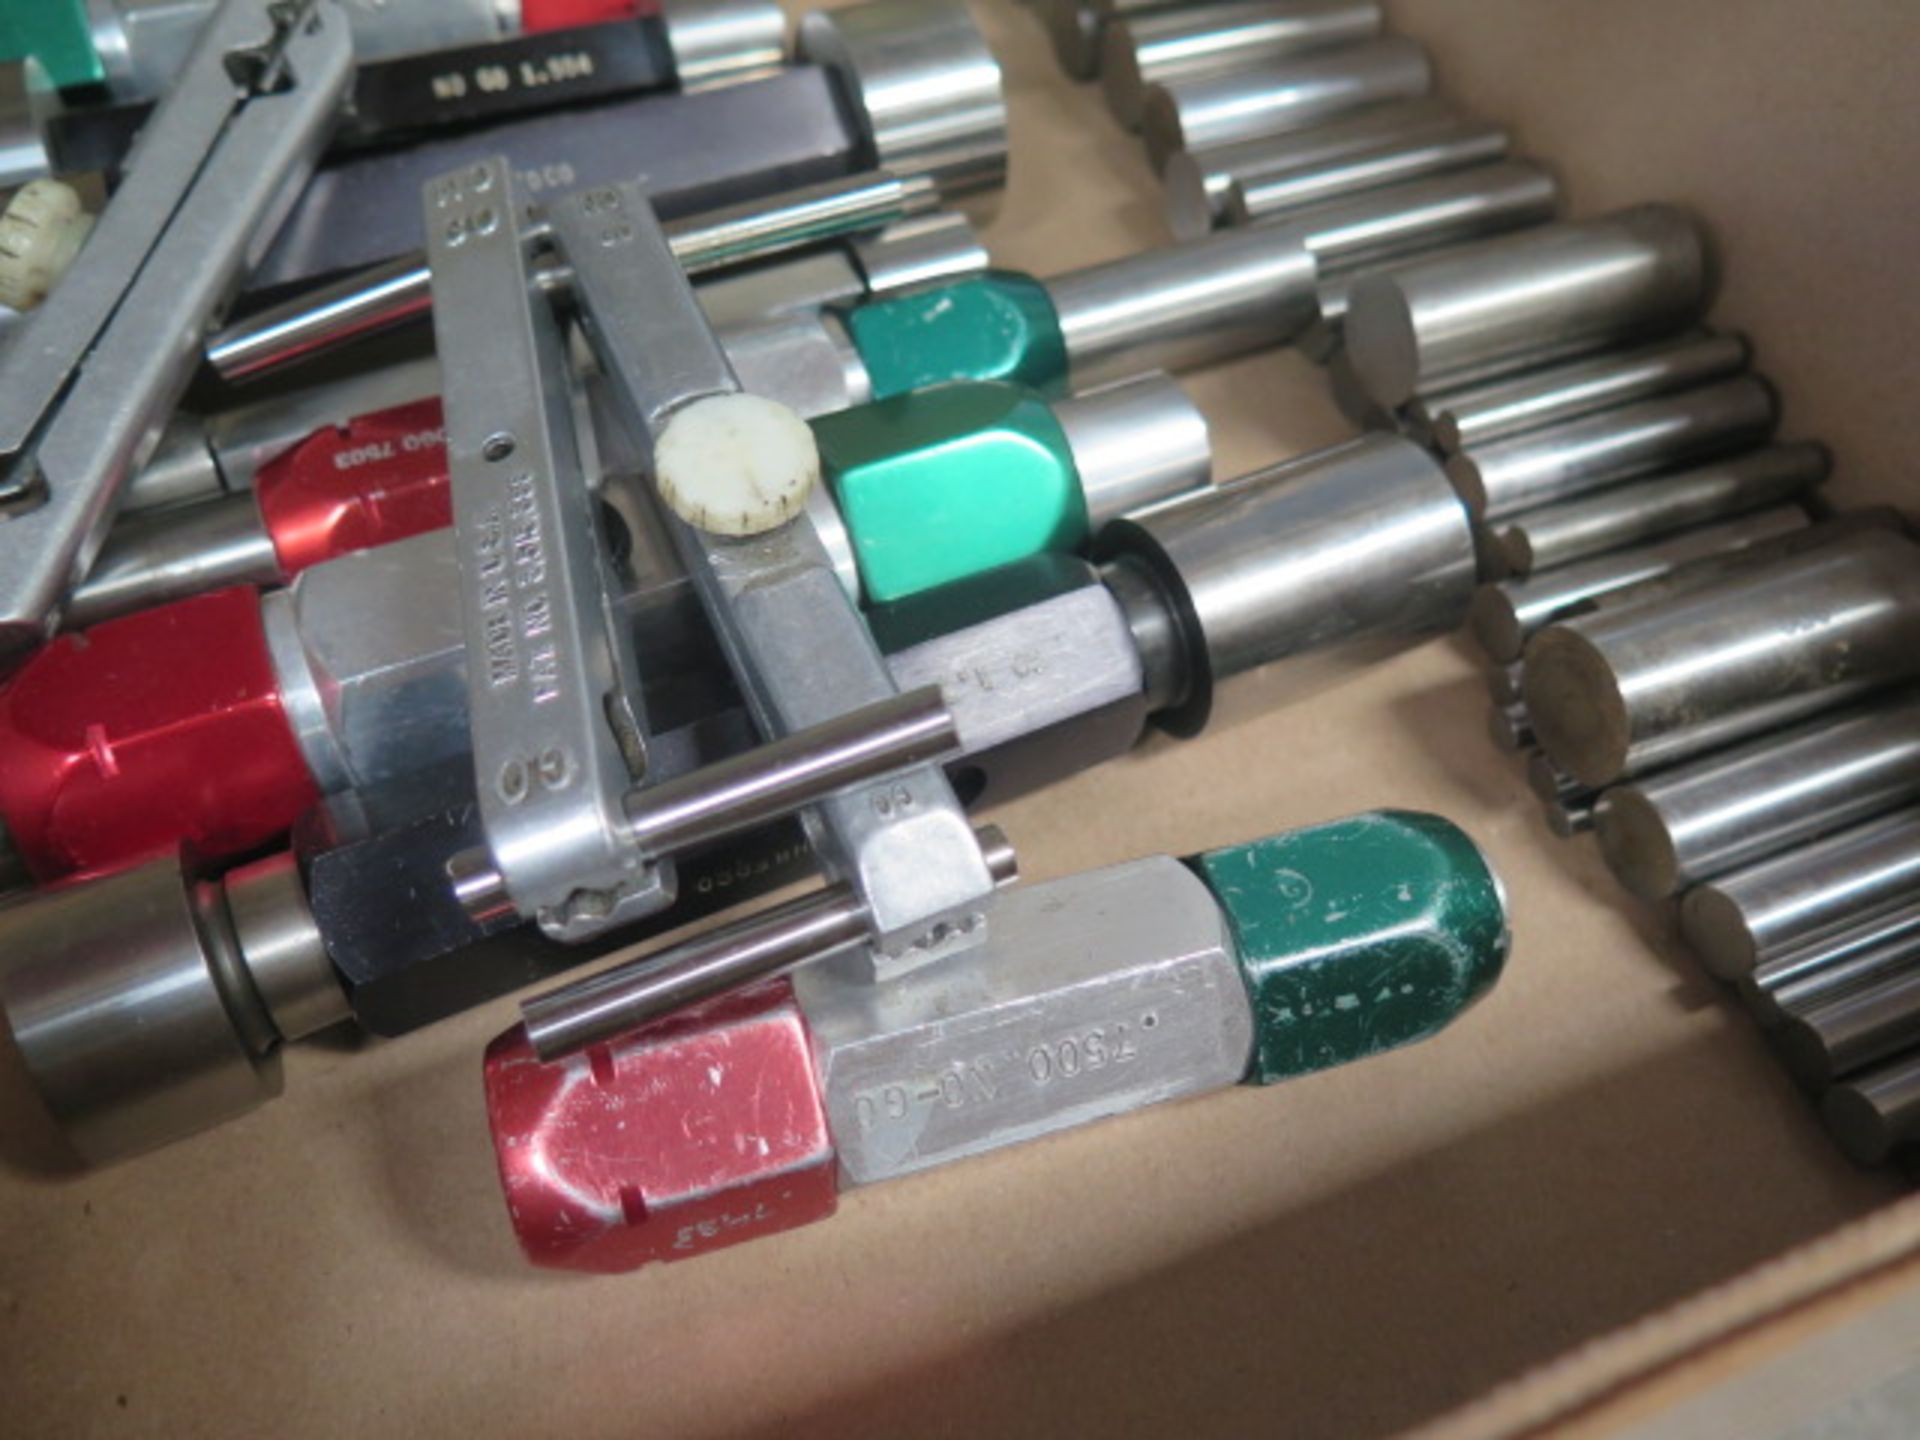 Deltronic Gage Pins and Handles (SOLD AS-IS - NO WARRANTY) - Image 6 of 6